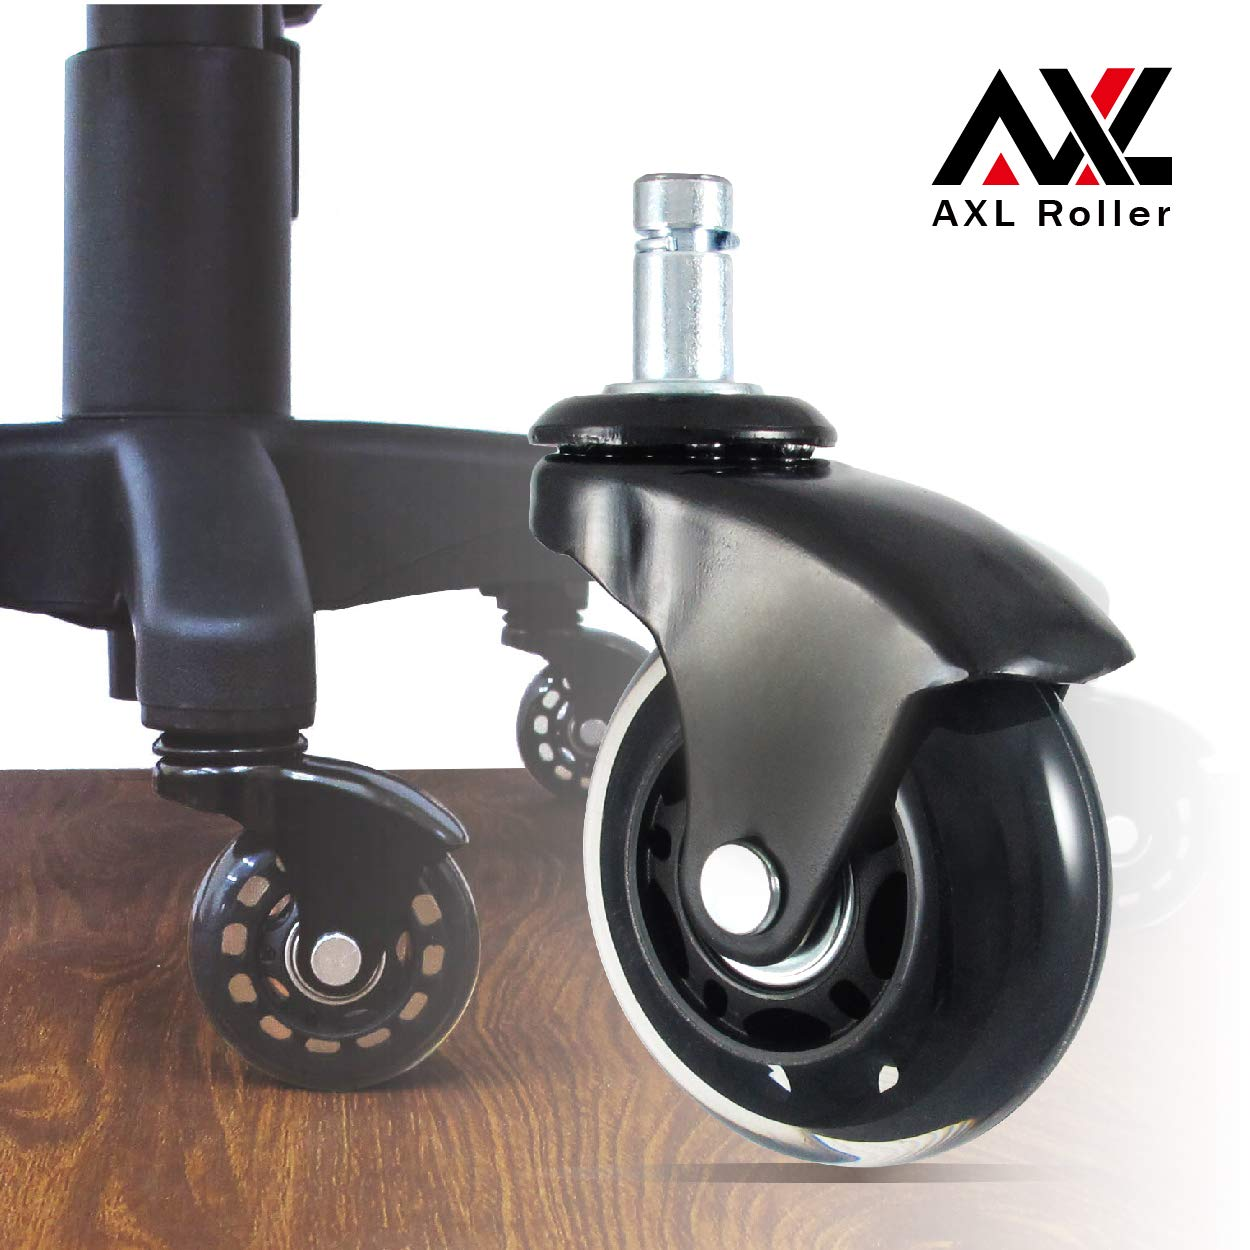 Office Chair Caster Wheels Roller Blade for Hardwood, Replacement Computer Mat, PU Style Castors, Desk Chair Floor Protector, No Noise, Heavy Duty - Wheel Set of 5, (Black Feet, Black/Clear)